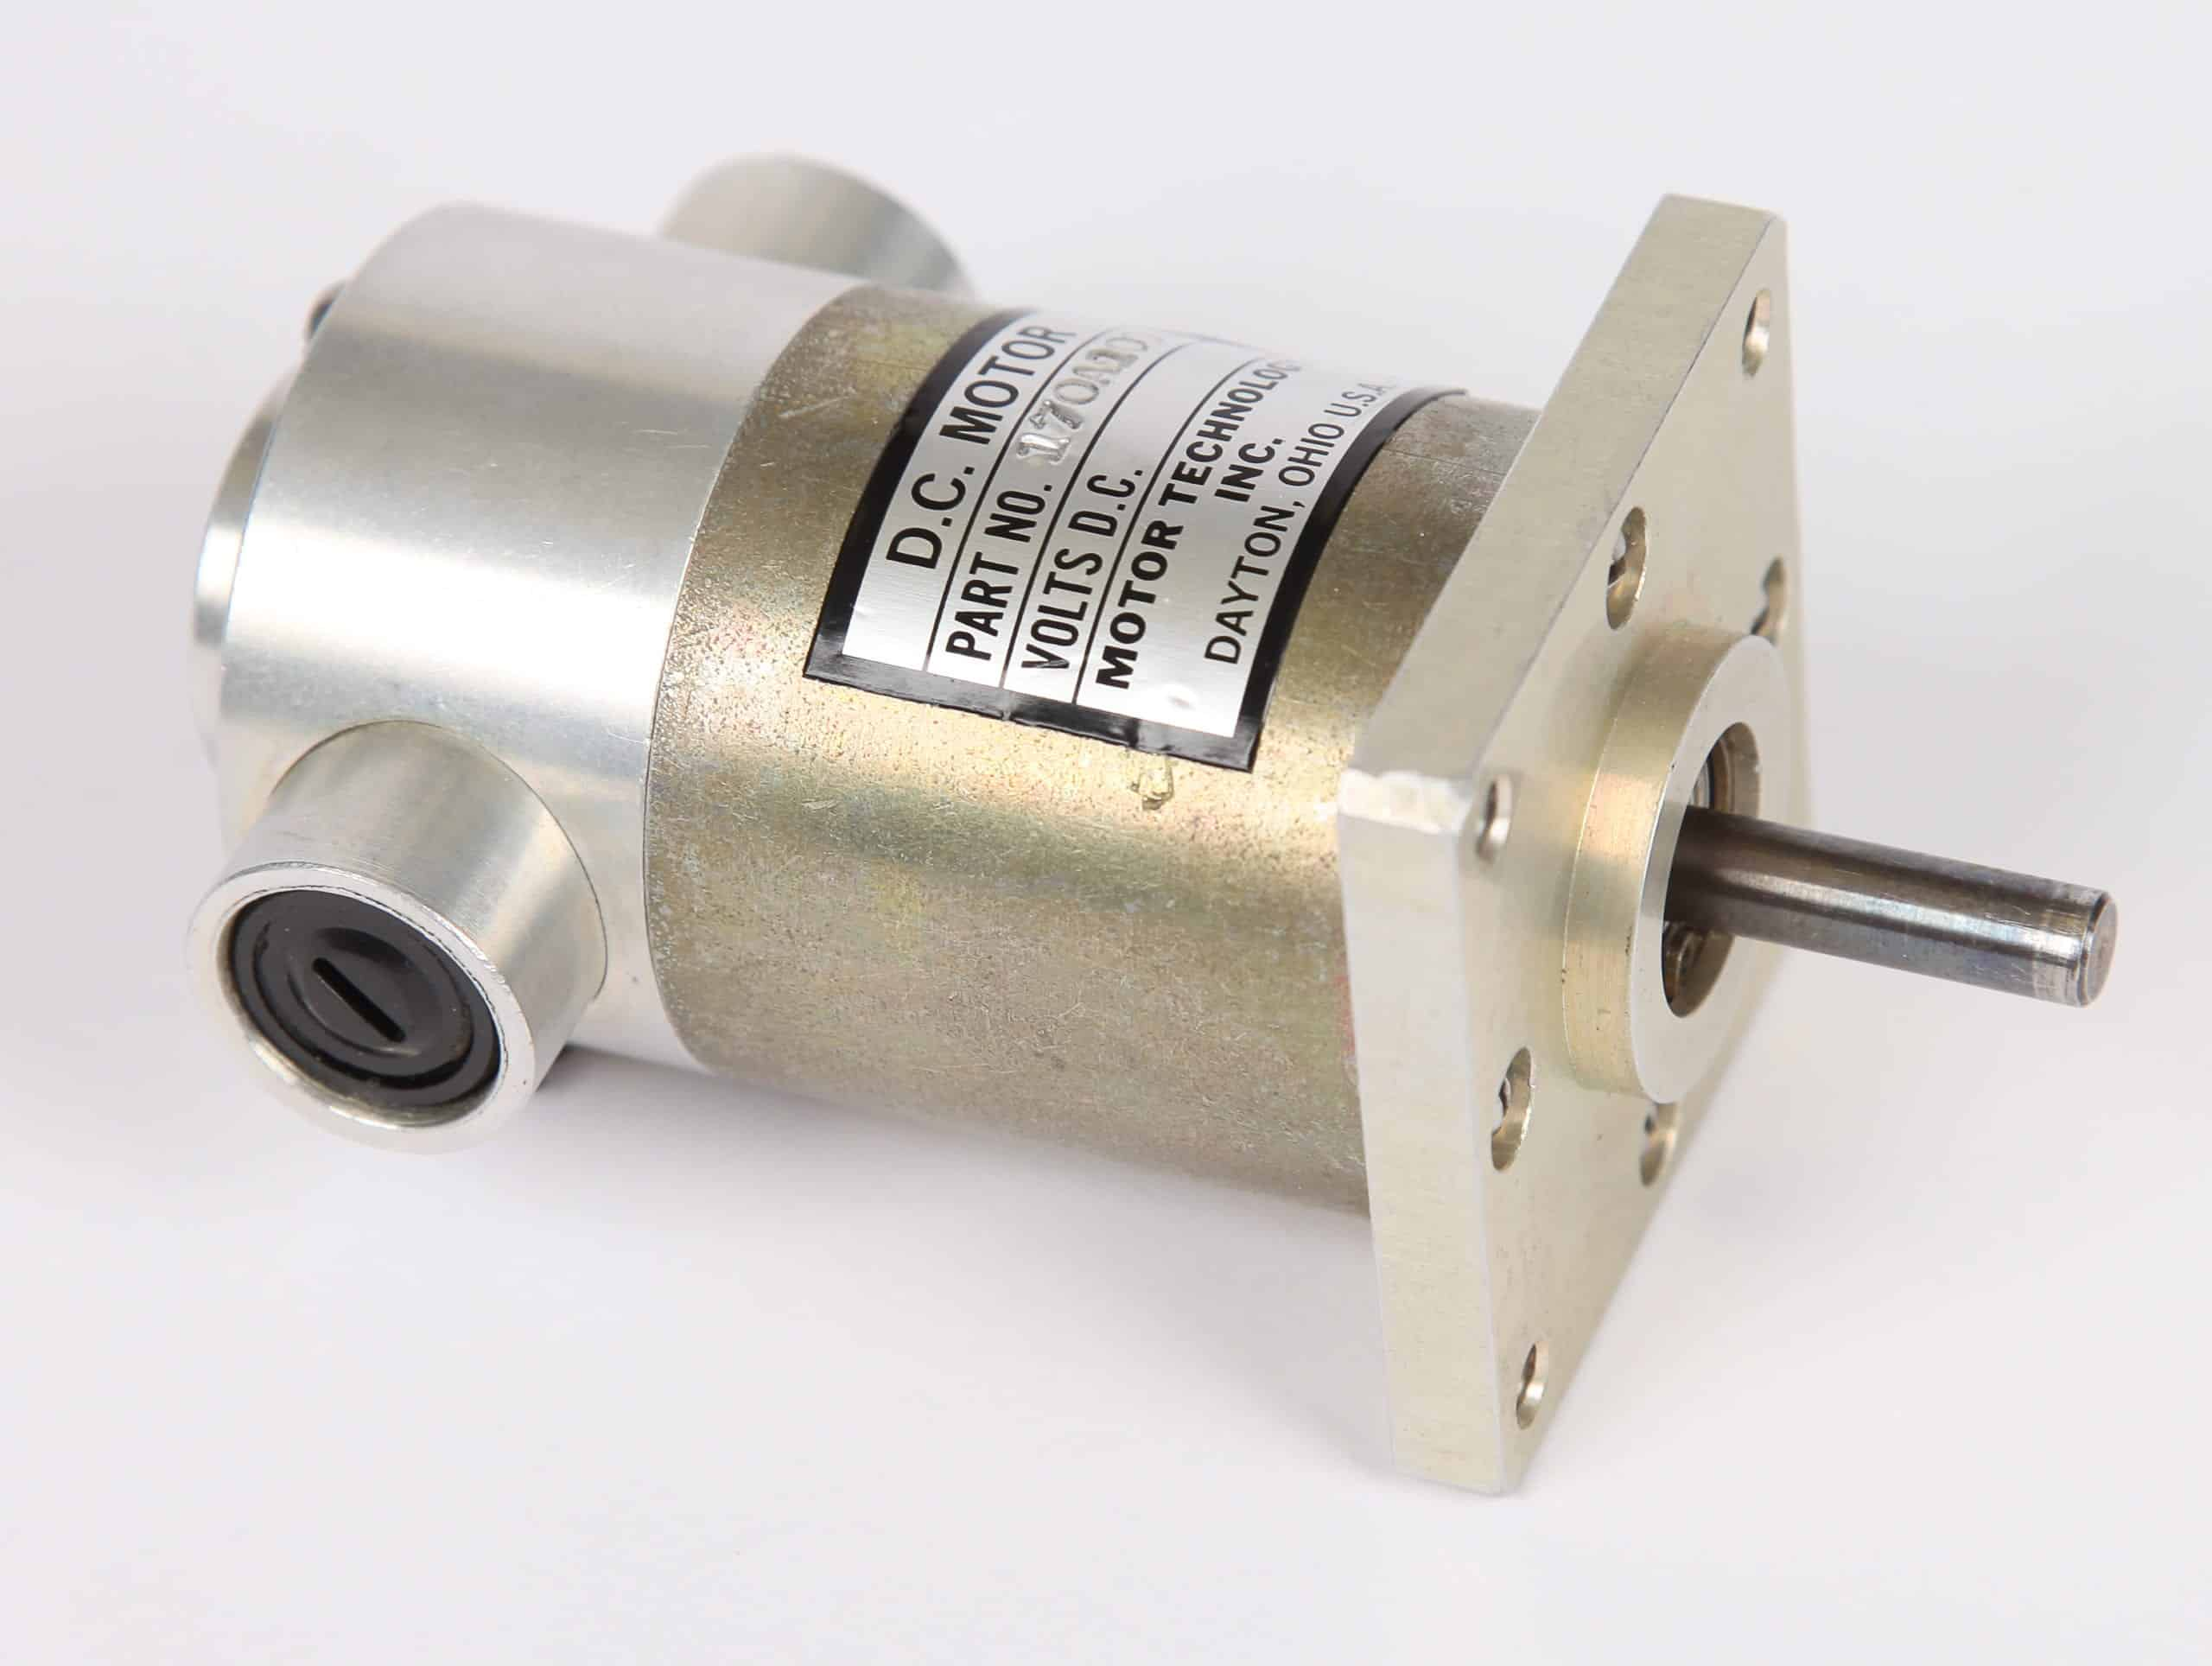 170A100 Military-Grade Fractional HP DC Motor